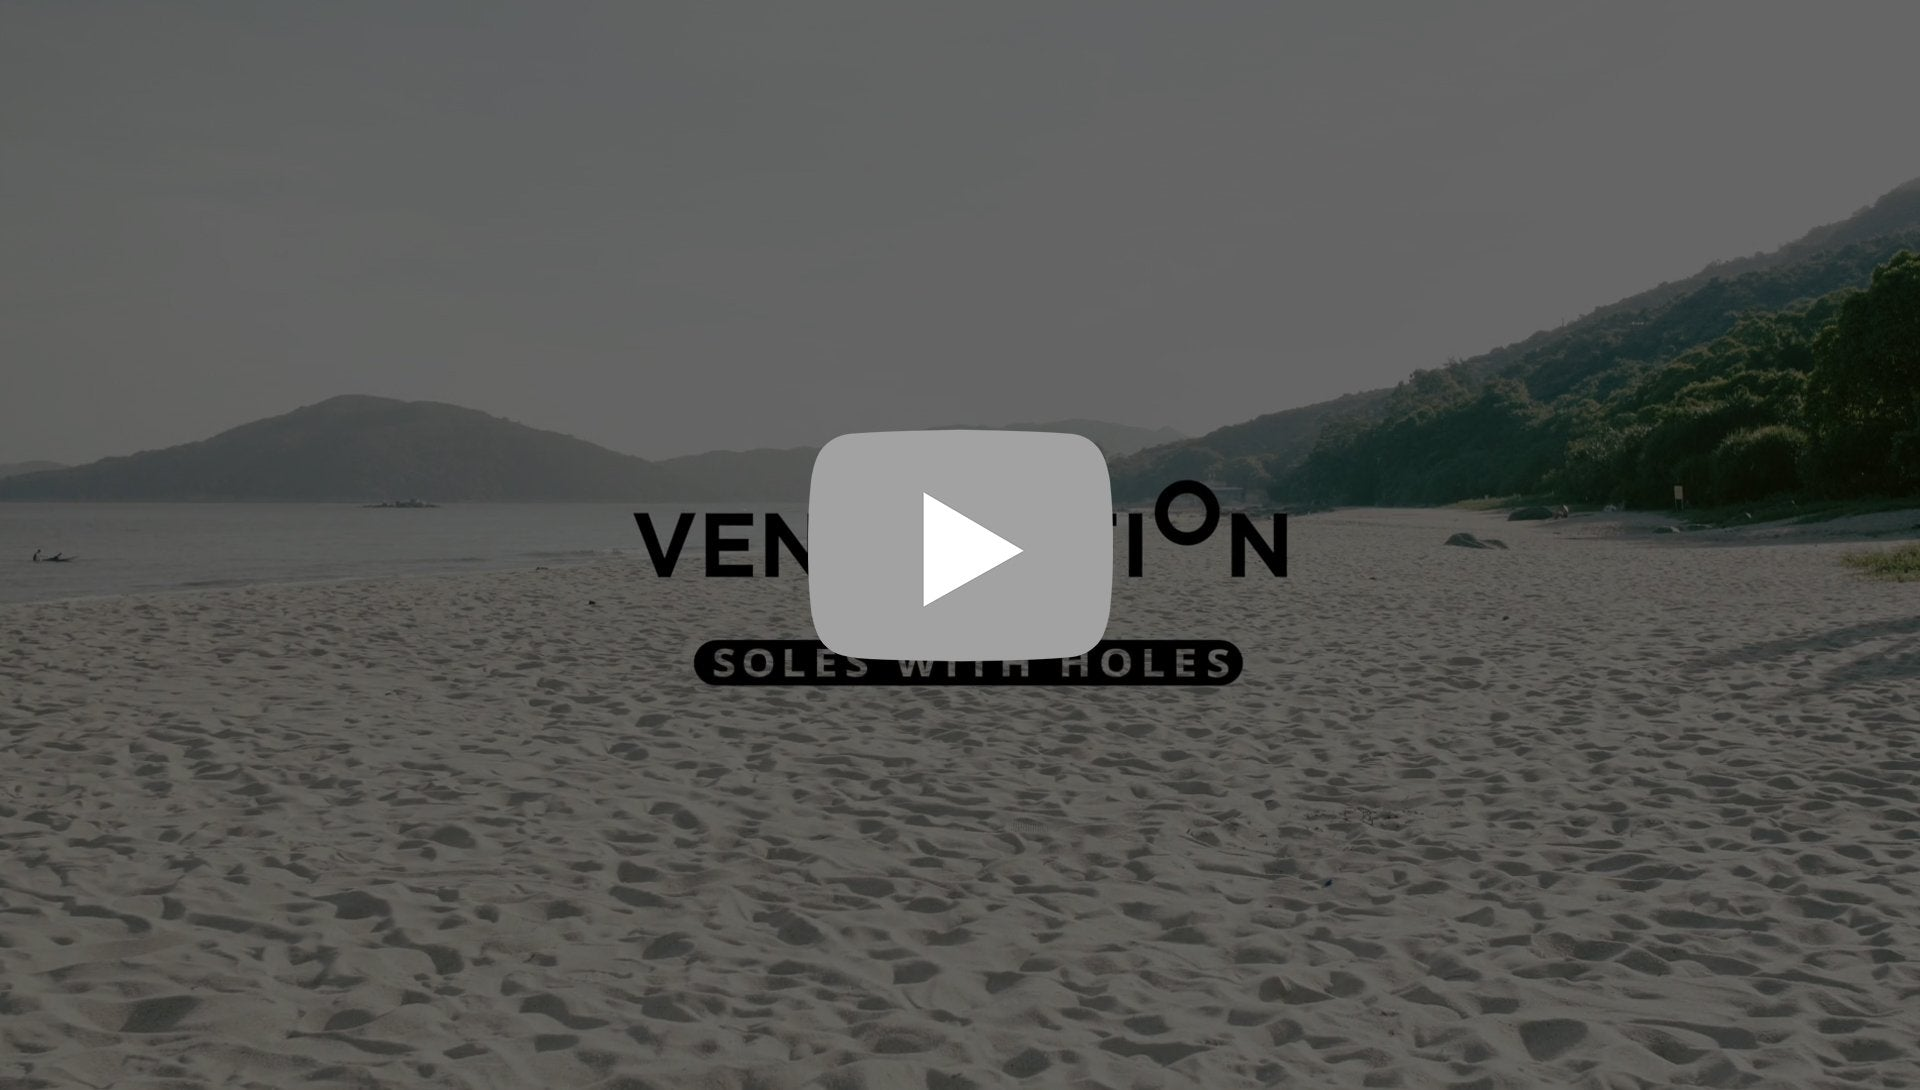 ventolation sand free shoes video